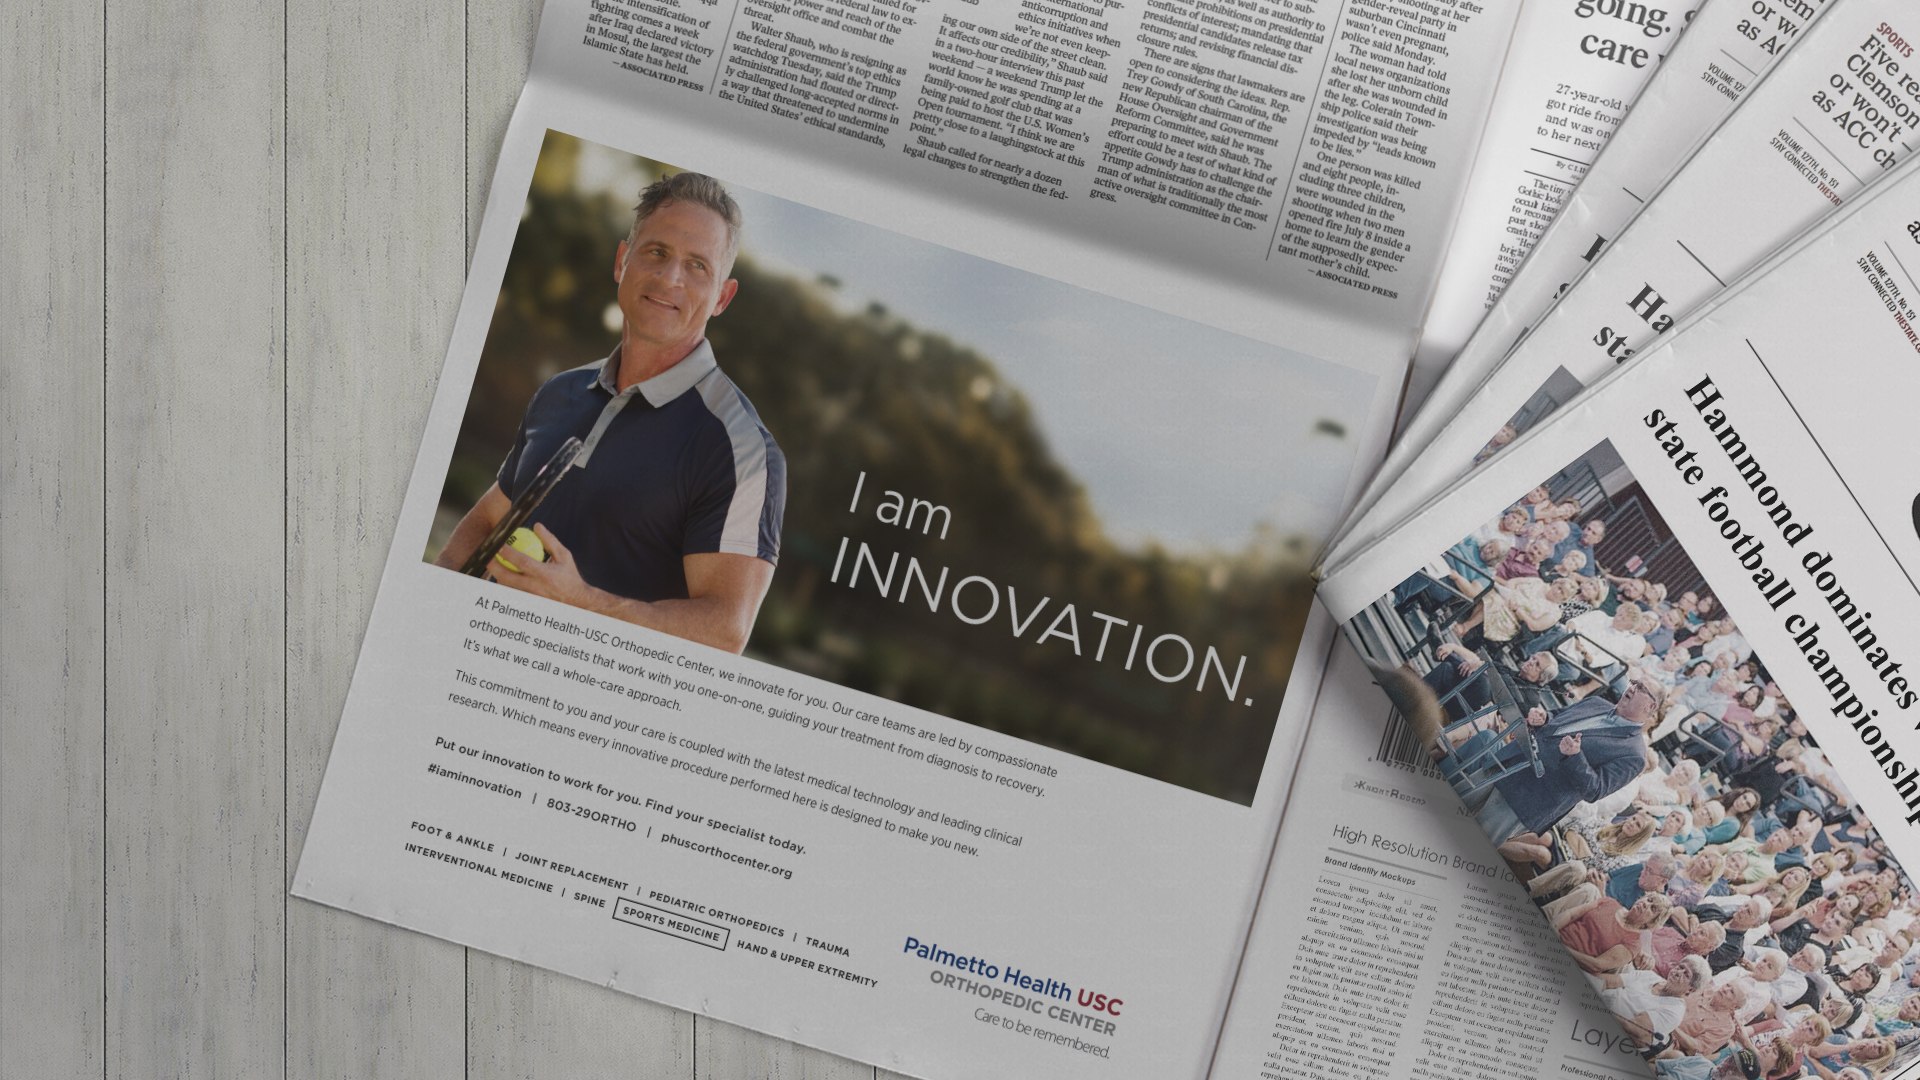 iamINNOVATION_newspaper_tennis